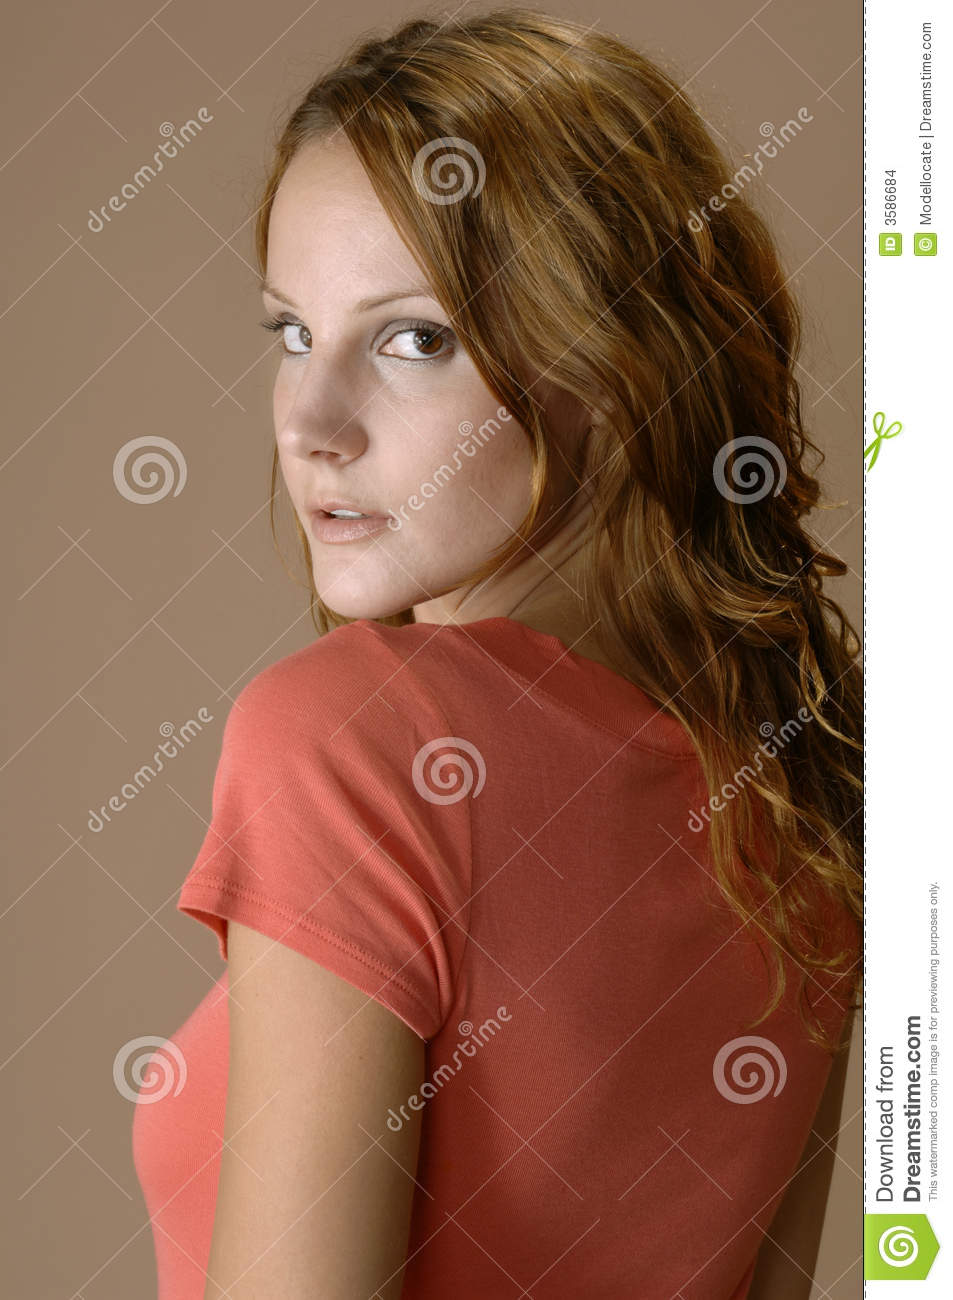 Woman Looking Over Her Shoulder Stock Images - Image: 3586684